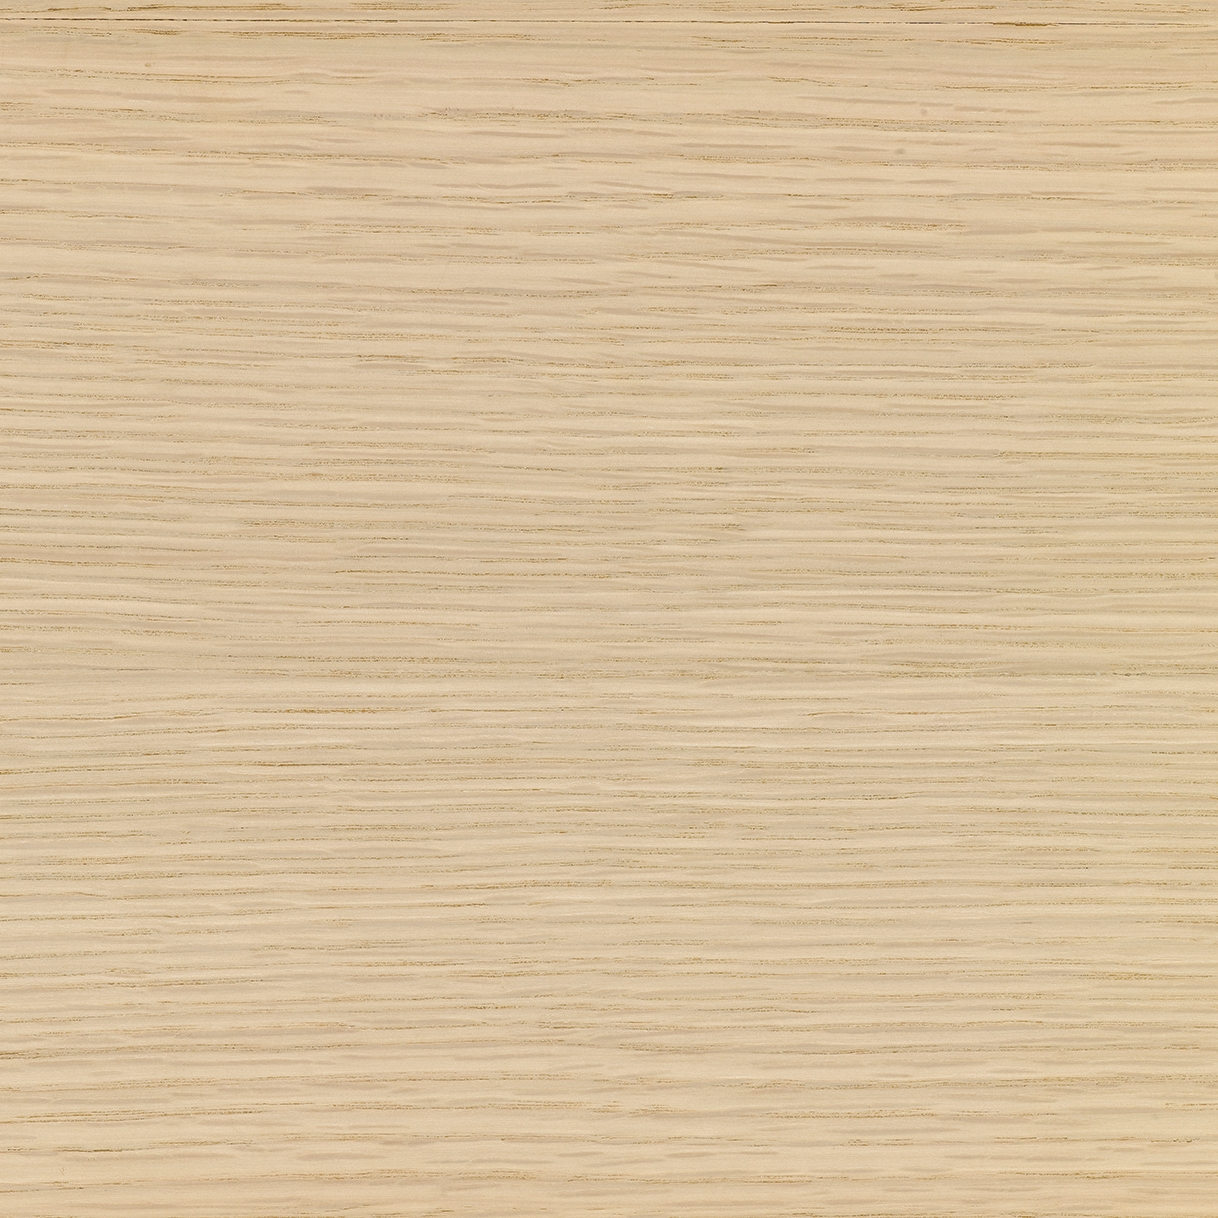 Elegance White Oak